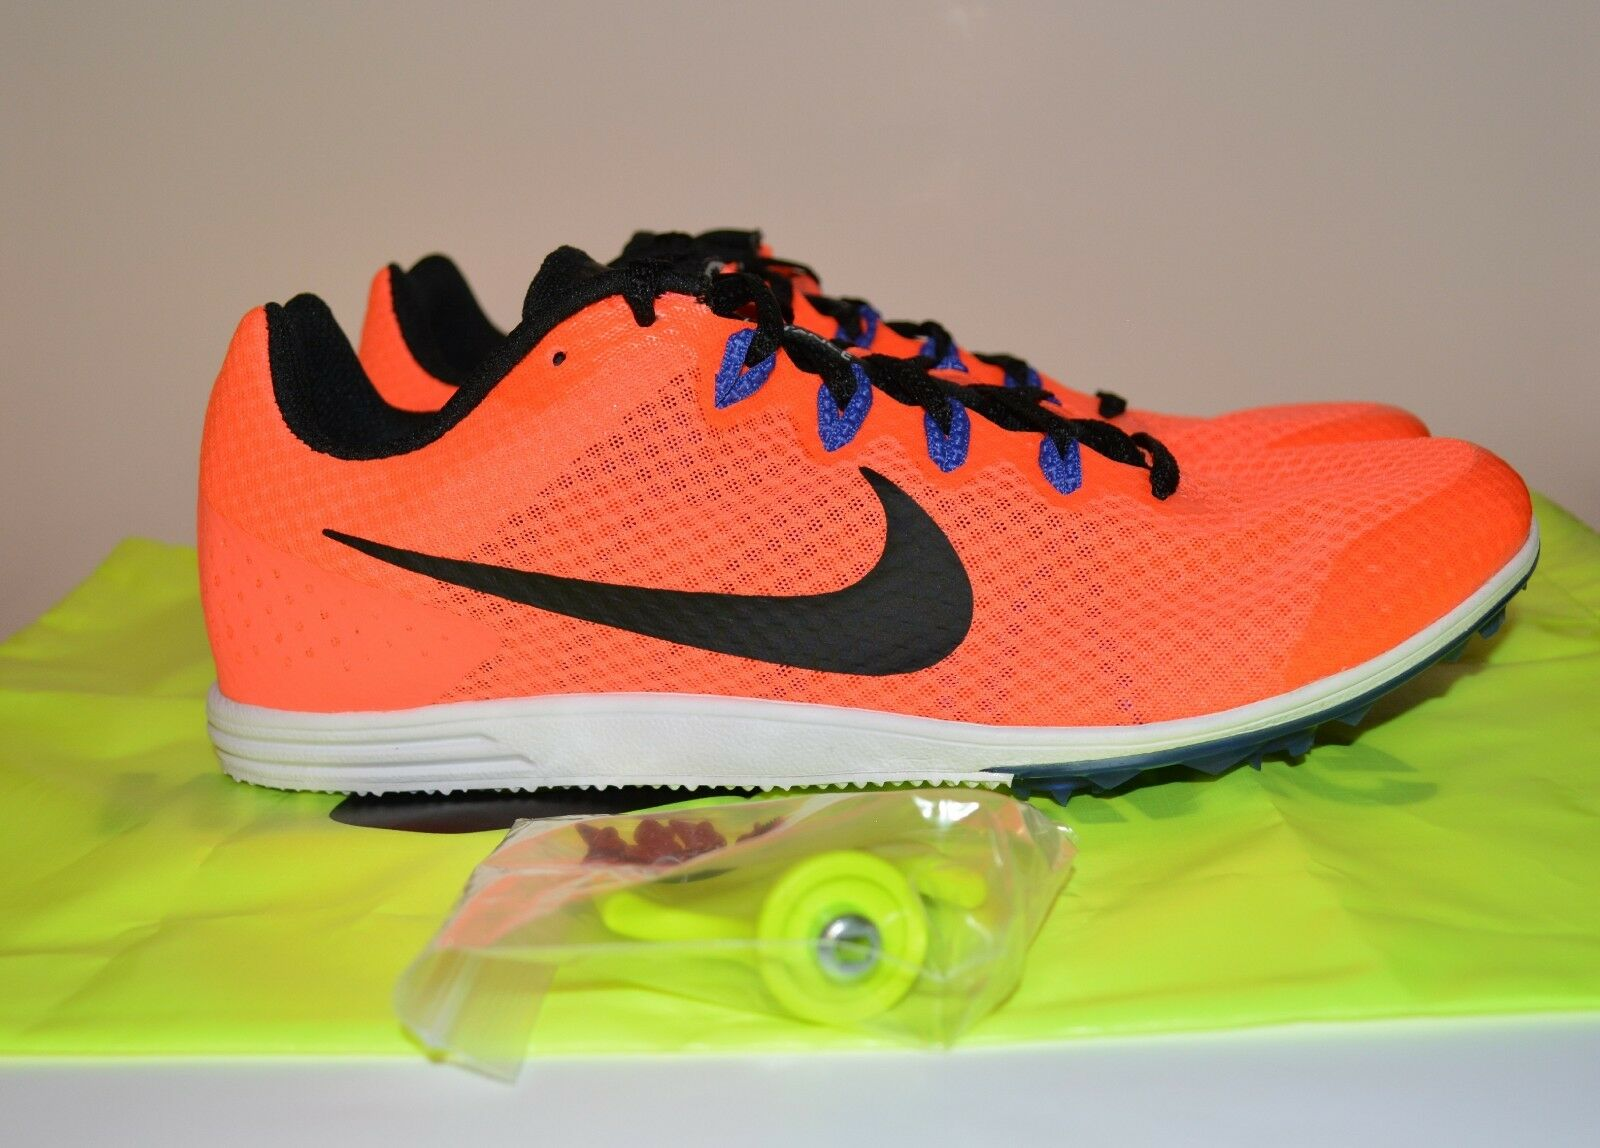 Nike Men's Zoom Rival D 9 Distance Track Spikes Orange Price reduction 806556 804